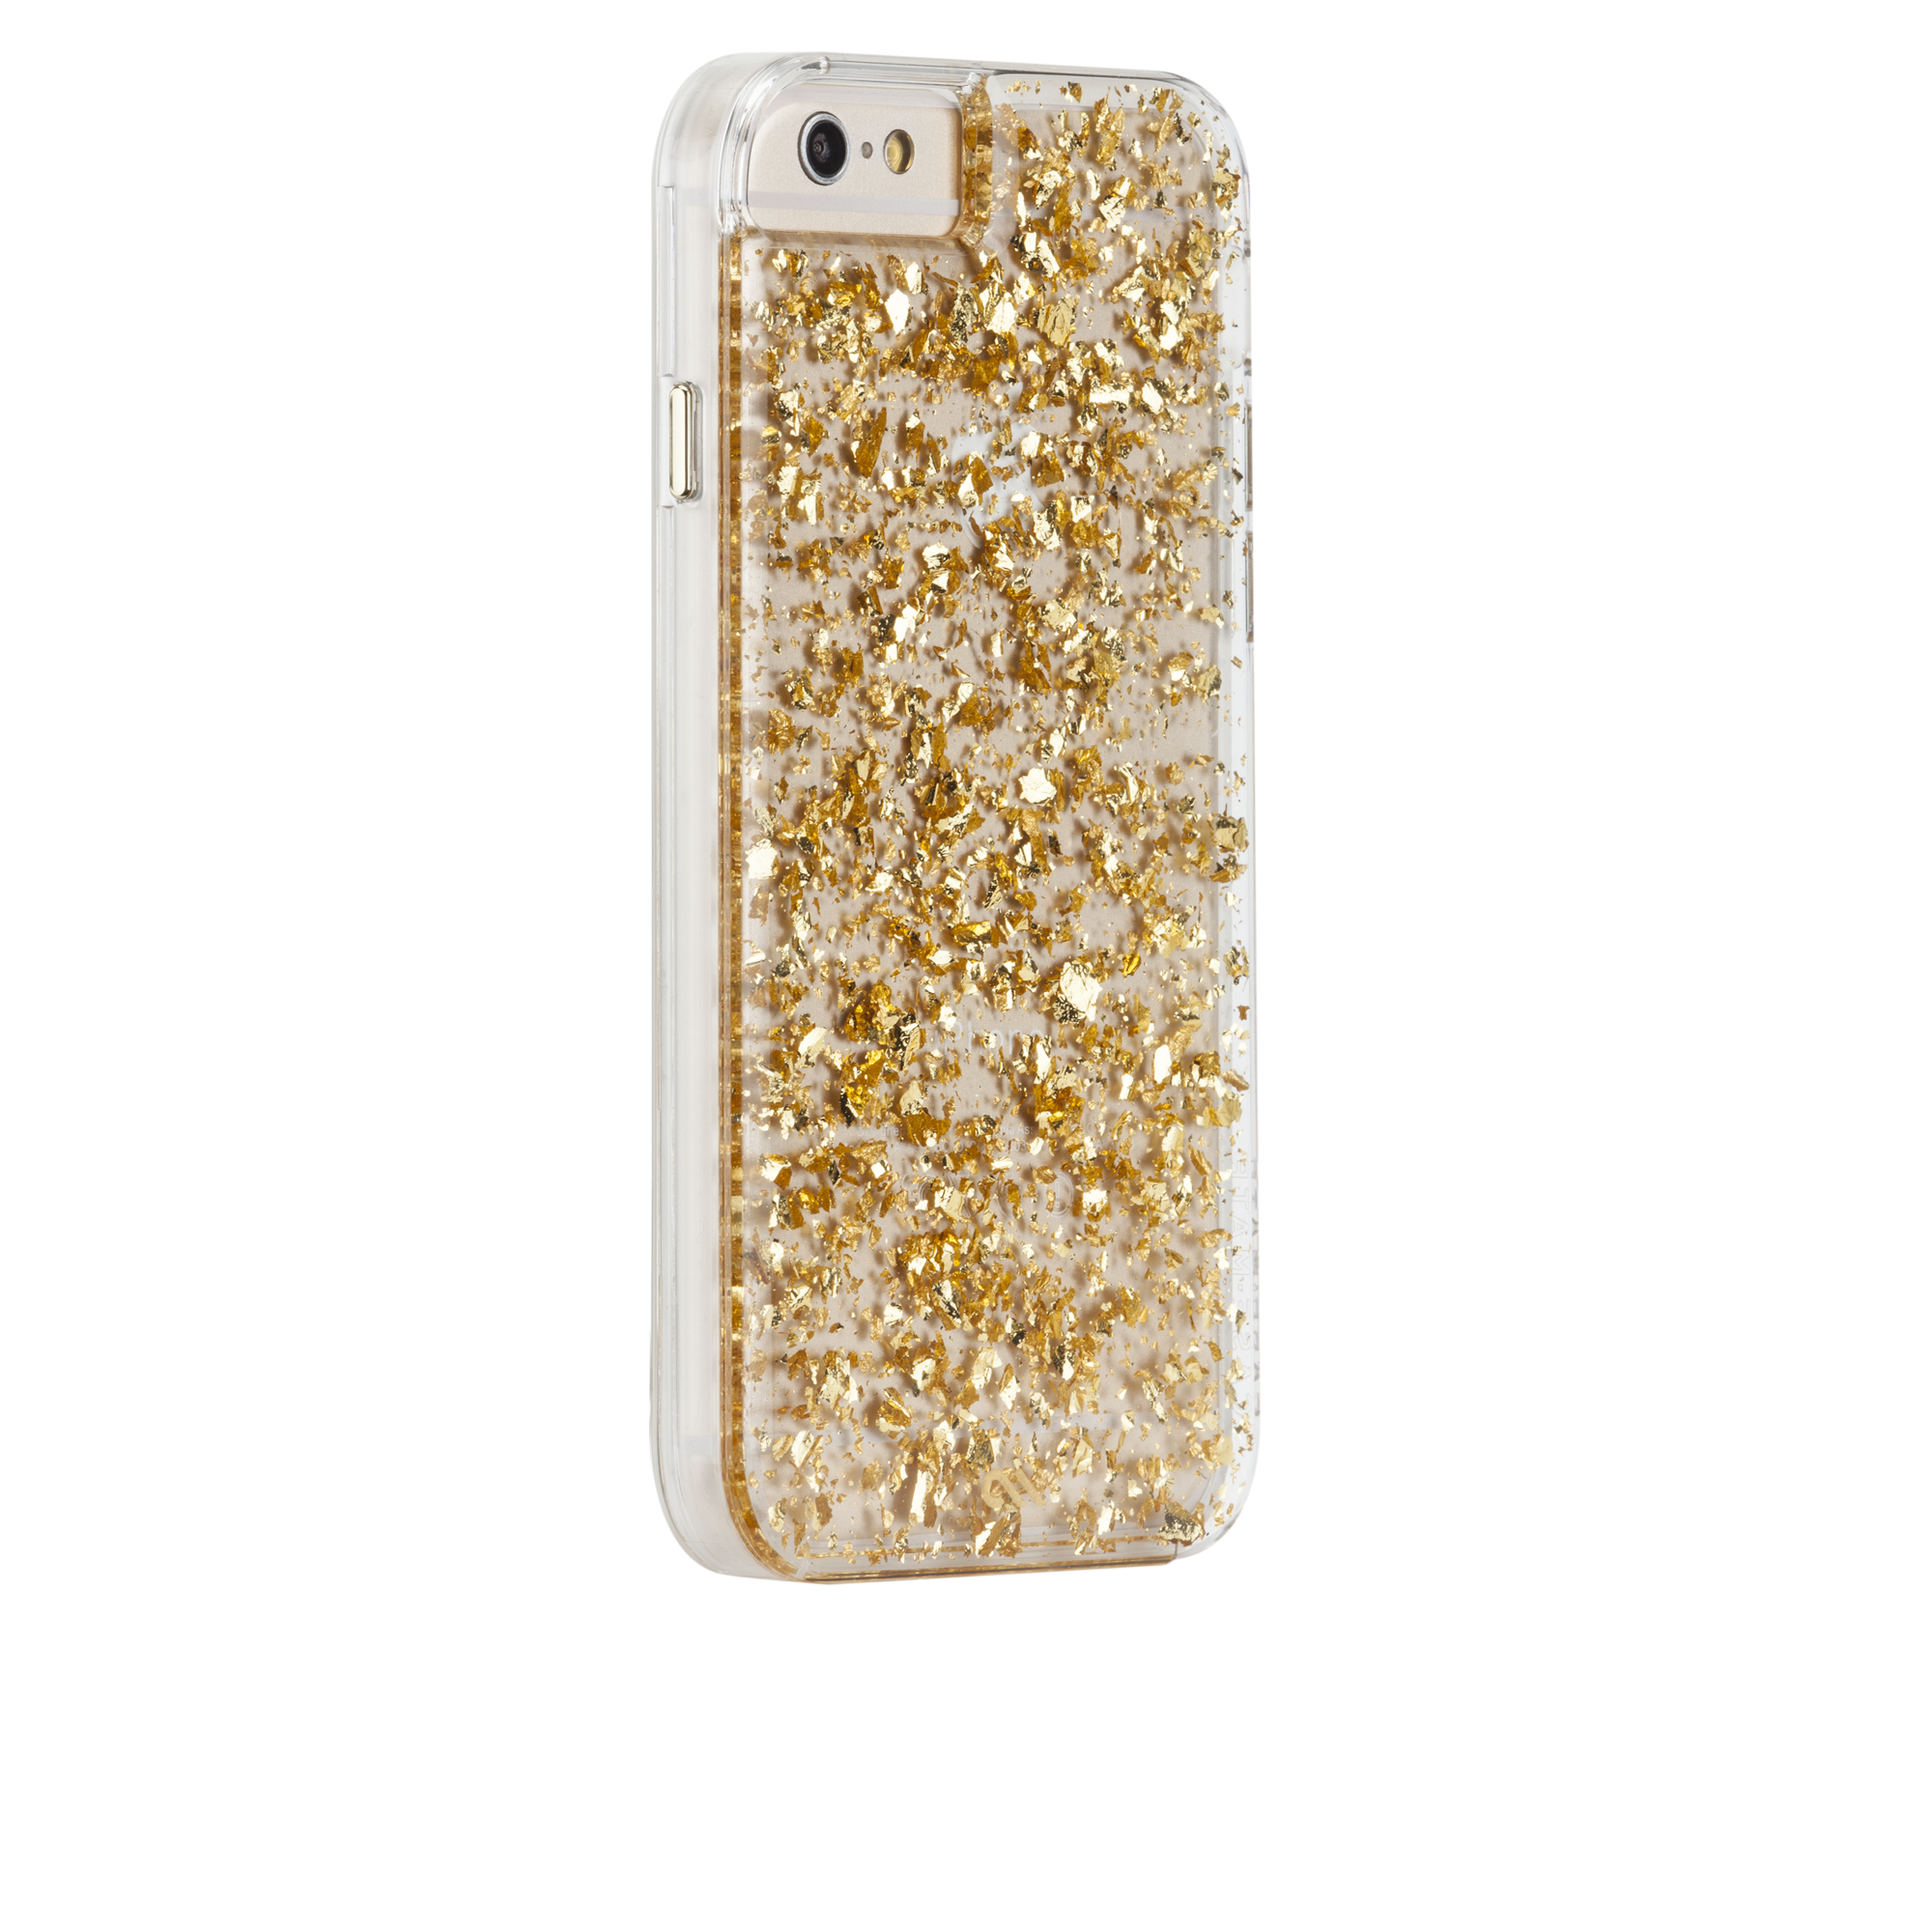 promo code 50e0c afefe iPhone 6/6s Gold Karat Cases | *Technology* | Iphone 6 gold, Iphone ...